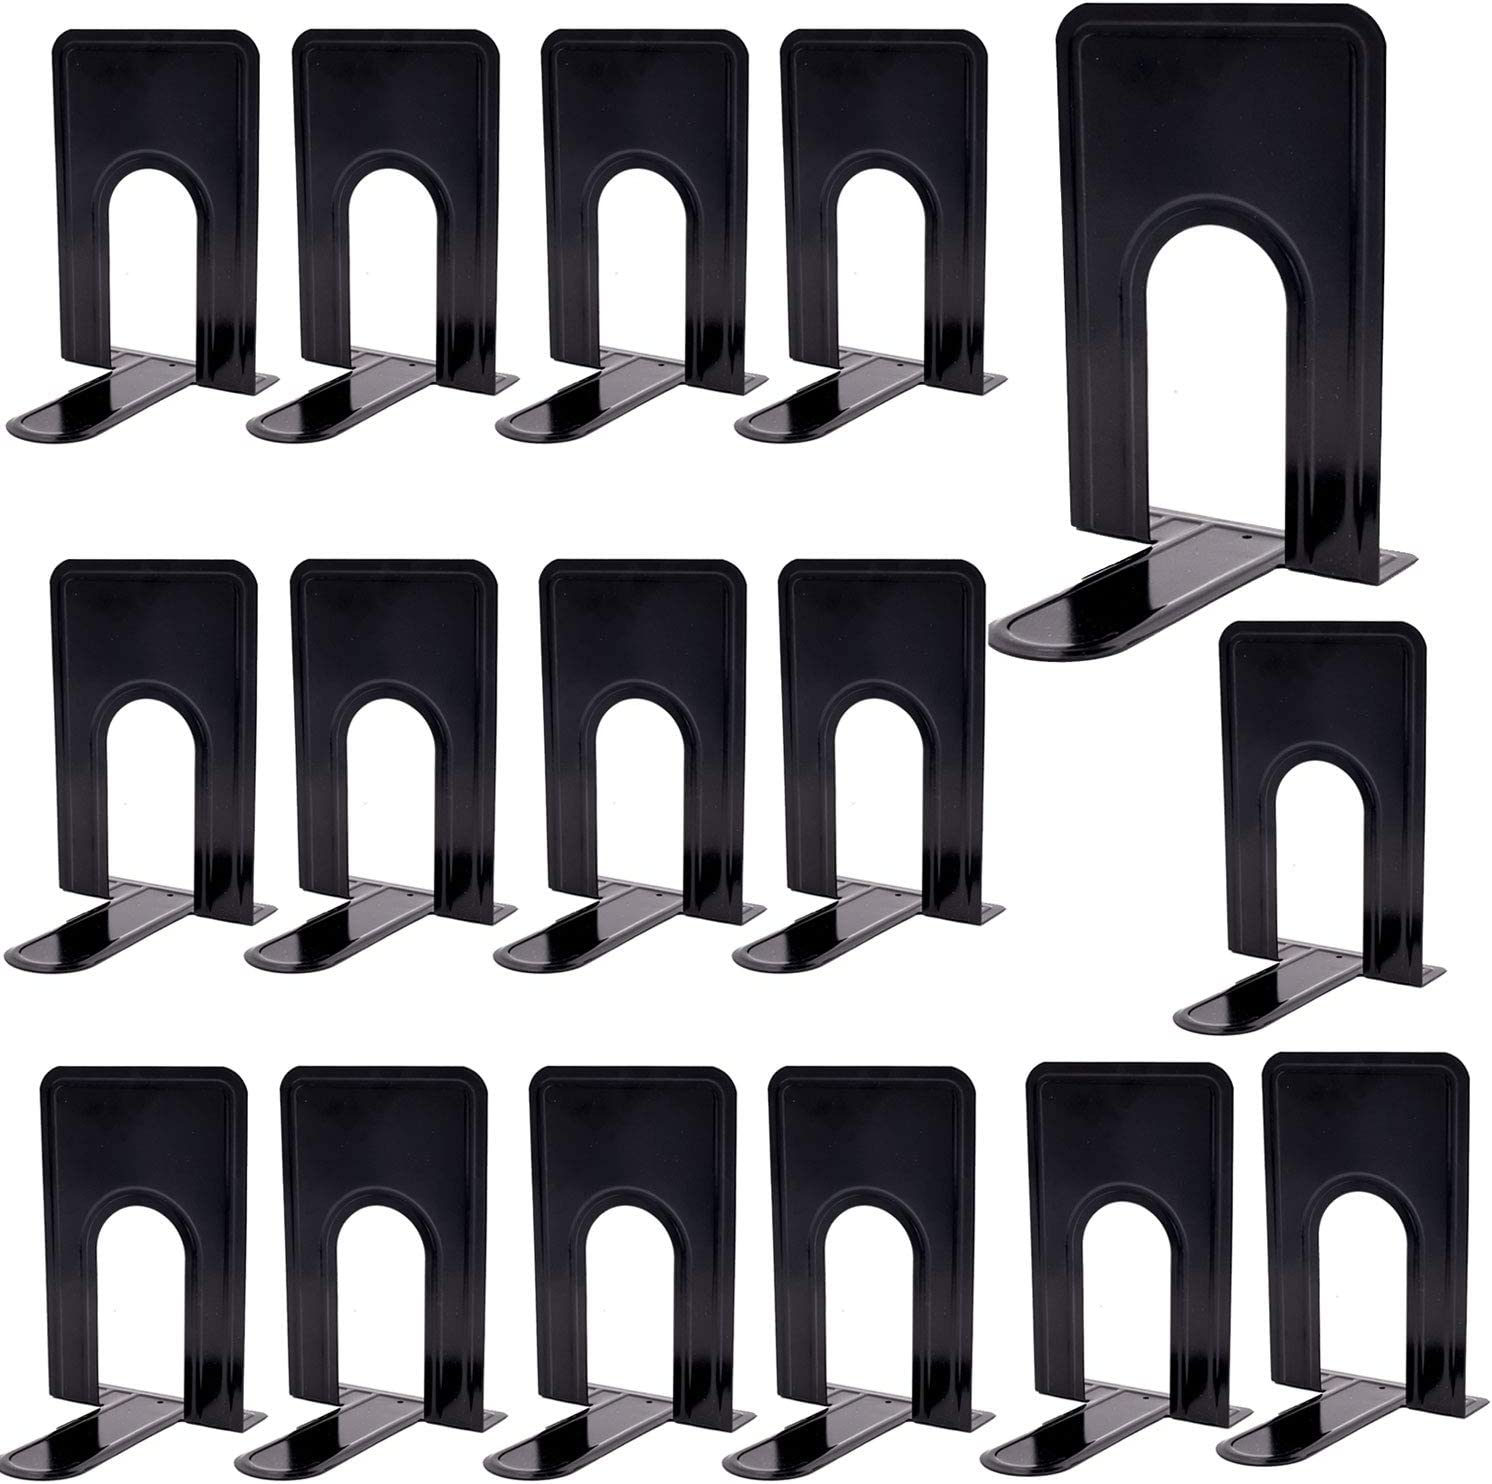 KINJOEK 8 Pairs 16 Pieces 8.3 x 5.1 x 6.5 Inch Metal Bookends, Heavy Duty Book Support with Anti Slip Pads for Books, Magazines, DVDs, Perfect for Home, Office, School, Library, Black